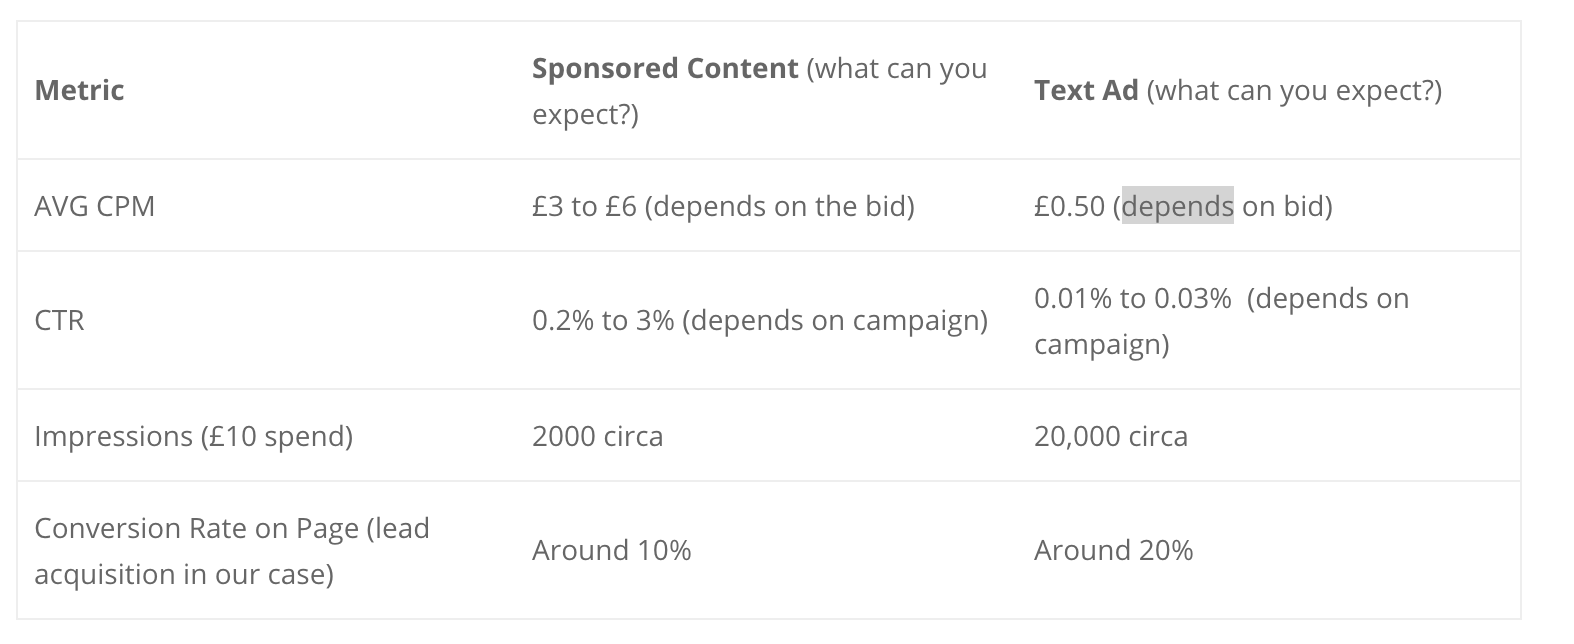 Sponsored Content vs Text Ad on Price, CTR and Conversion Rate LinkedIn ads